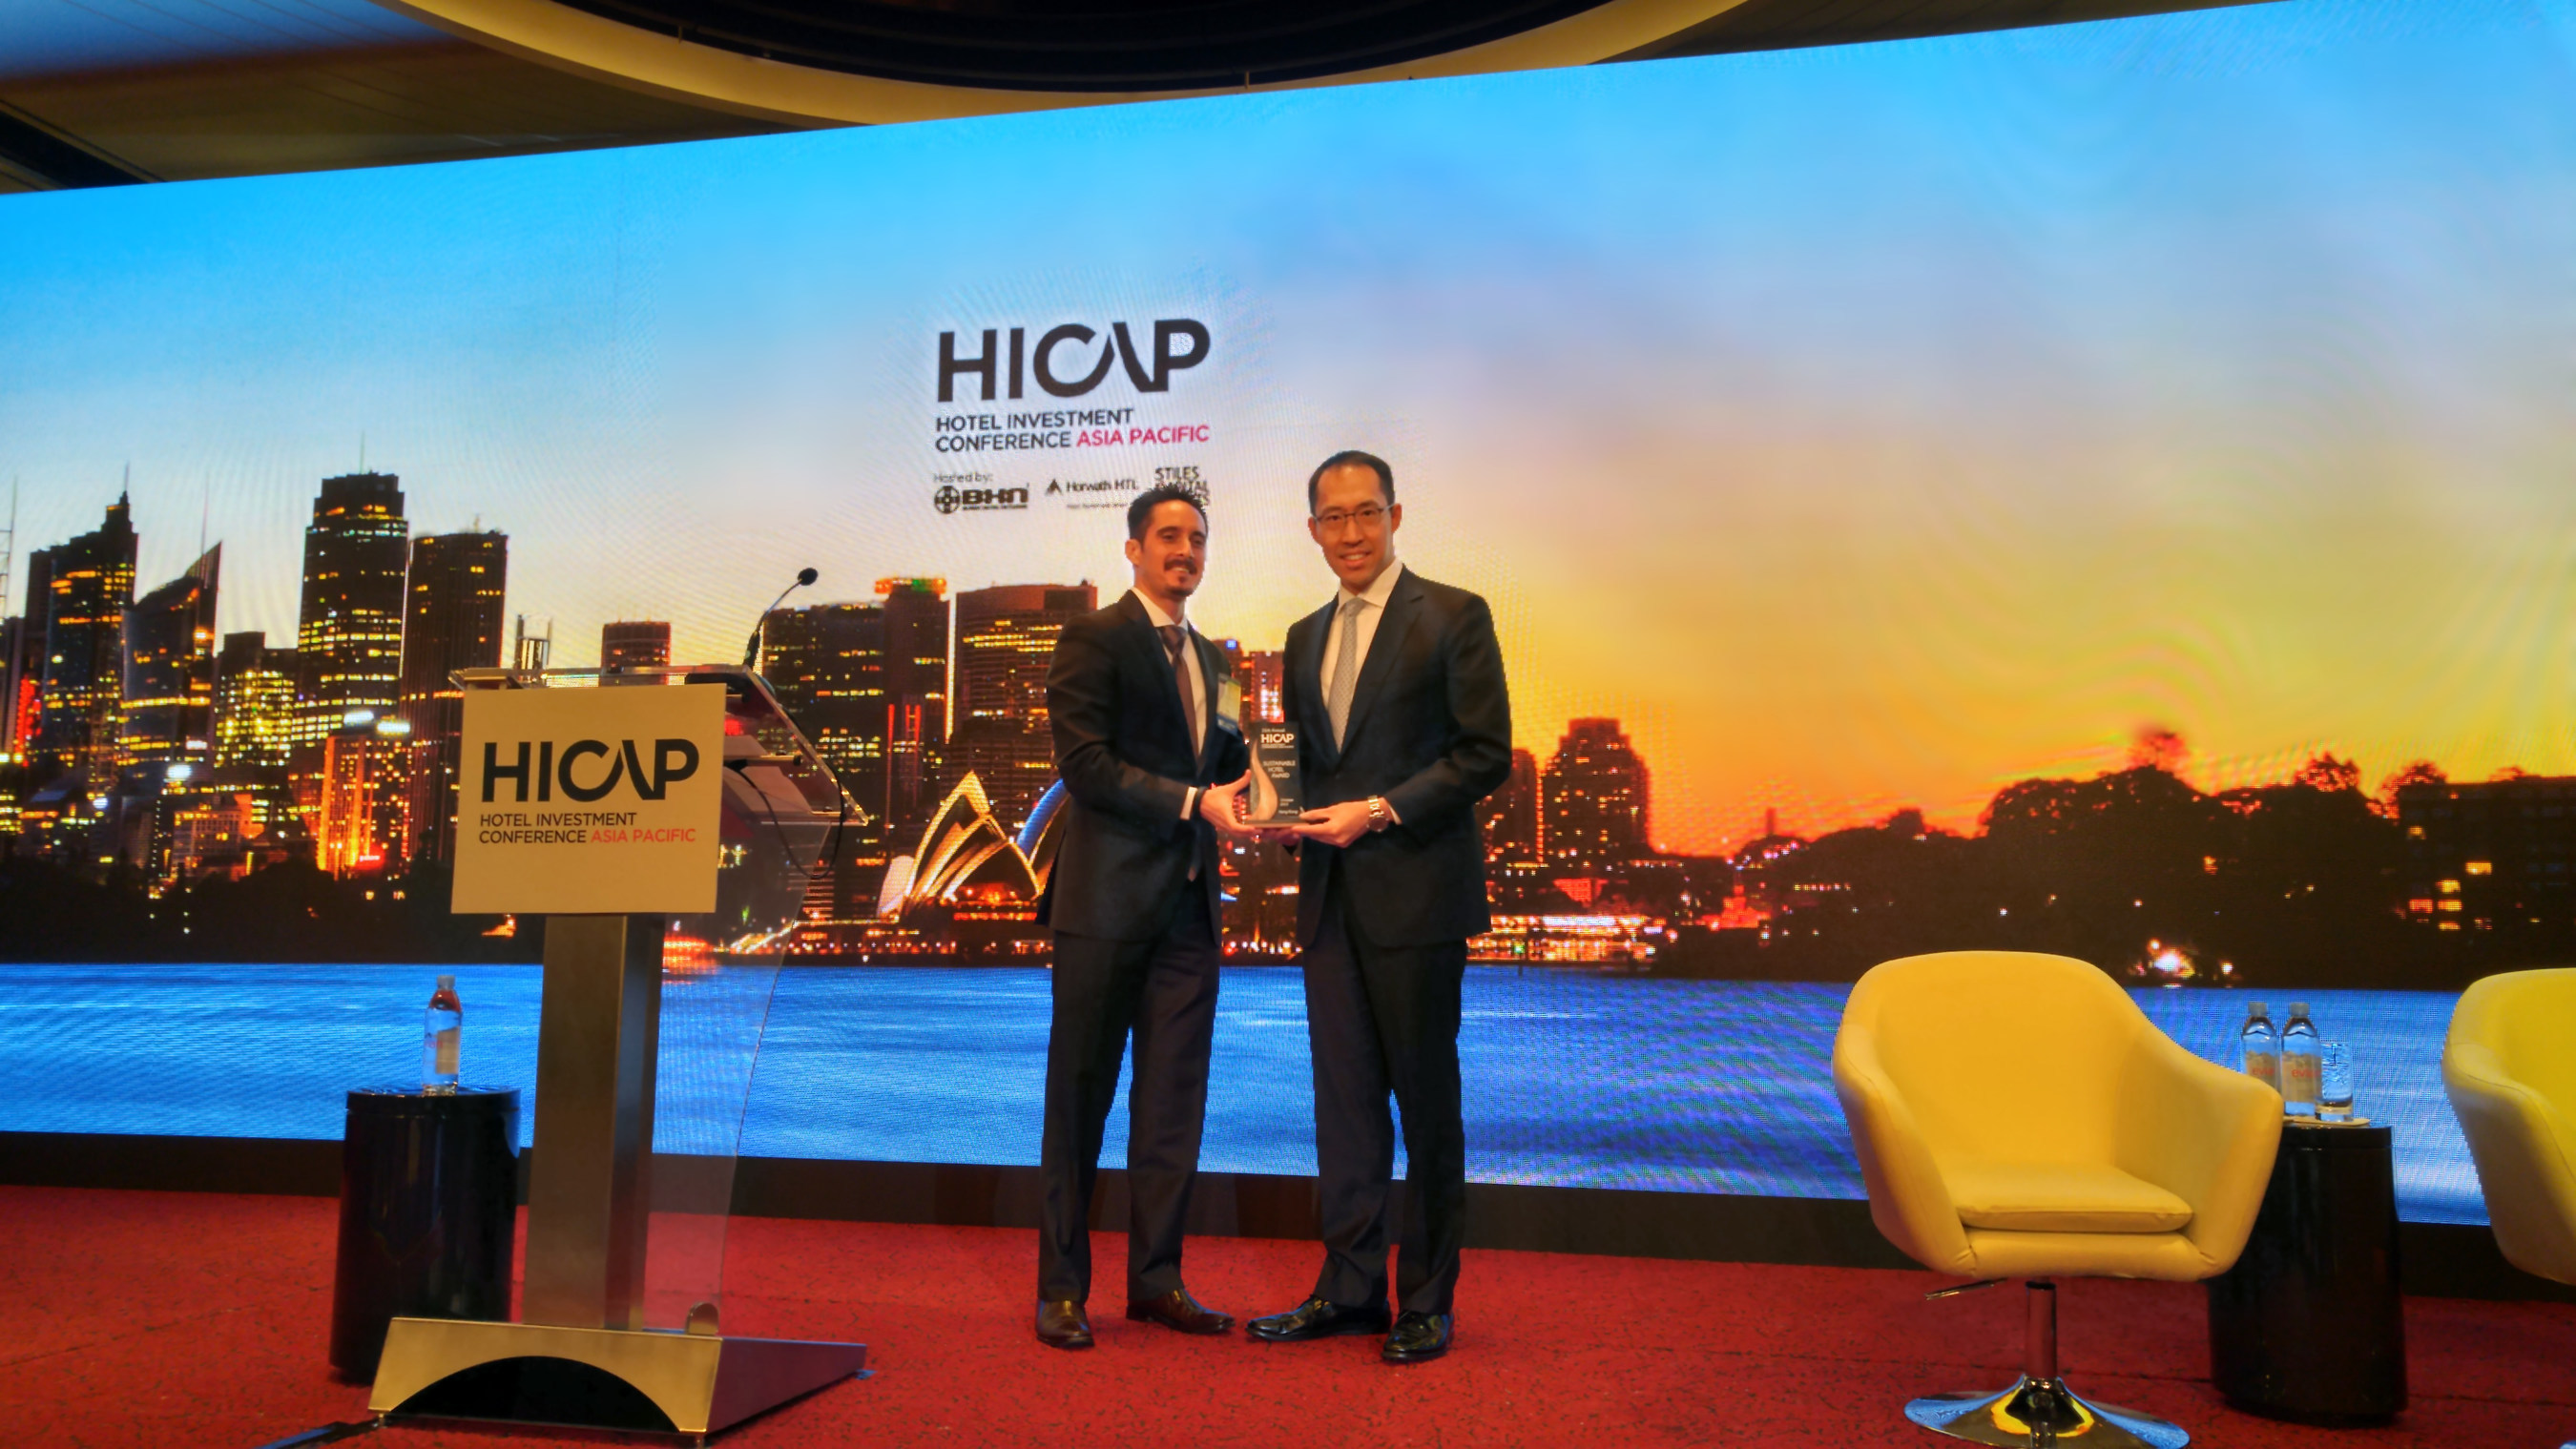 Dr. Daryl Ng JP, Director of Hong Kong Heritage Conservation Foundation Limited received the '2015 Sustainable ...